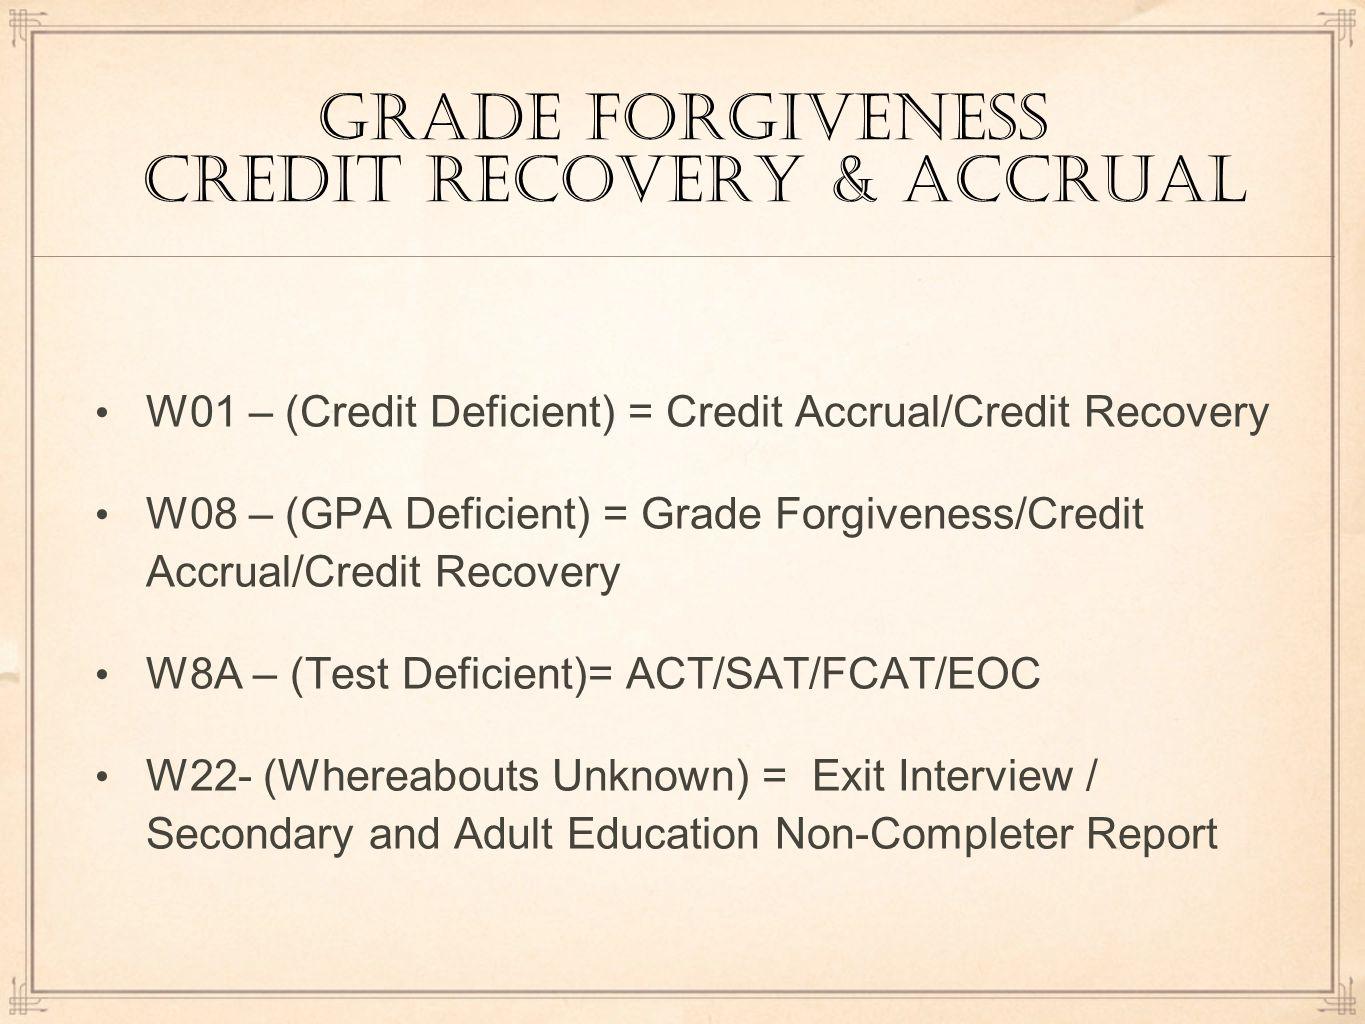 Grade Forgiveness Credit recovery & accrual W01 – (Credit Deficient) = Credit Accrual/Credit Recovery W08 – (GPA Deficient) = Grade Forgiveness/Credit Accrual/Credit Recovery W8A – (Test Deficient)= ACT/SAT/FCAT/EOC W22- (Whereabouts Unknown) = Exit Interview / Secondary and Adult Education Non-Completer Report